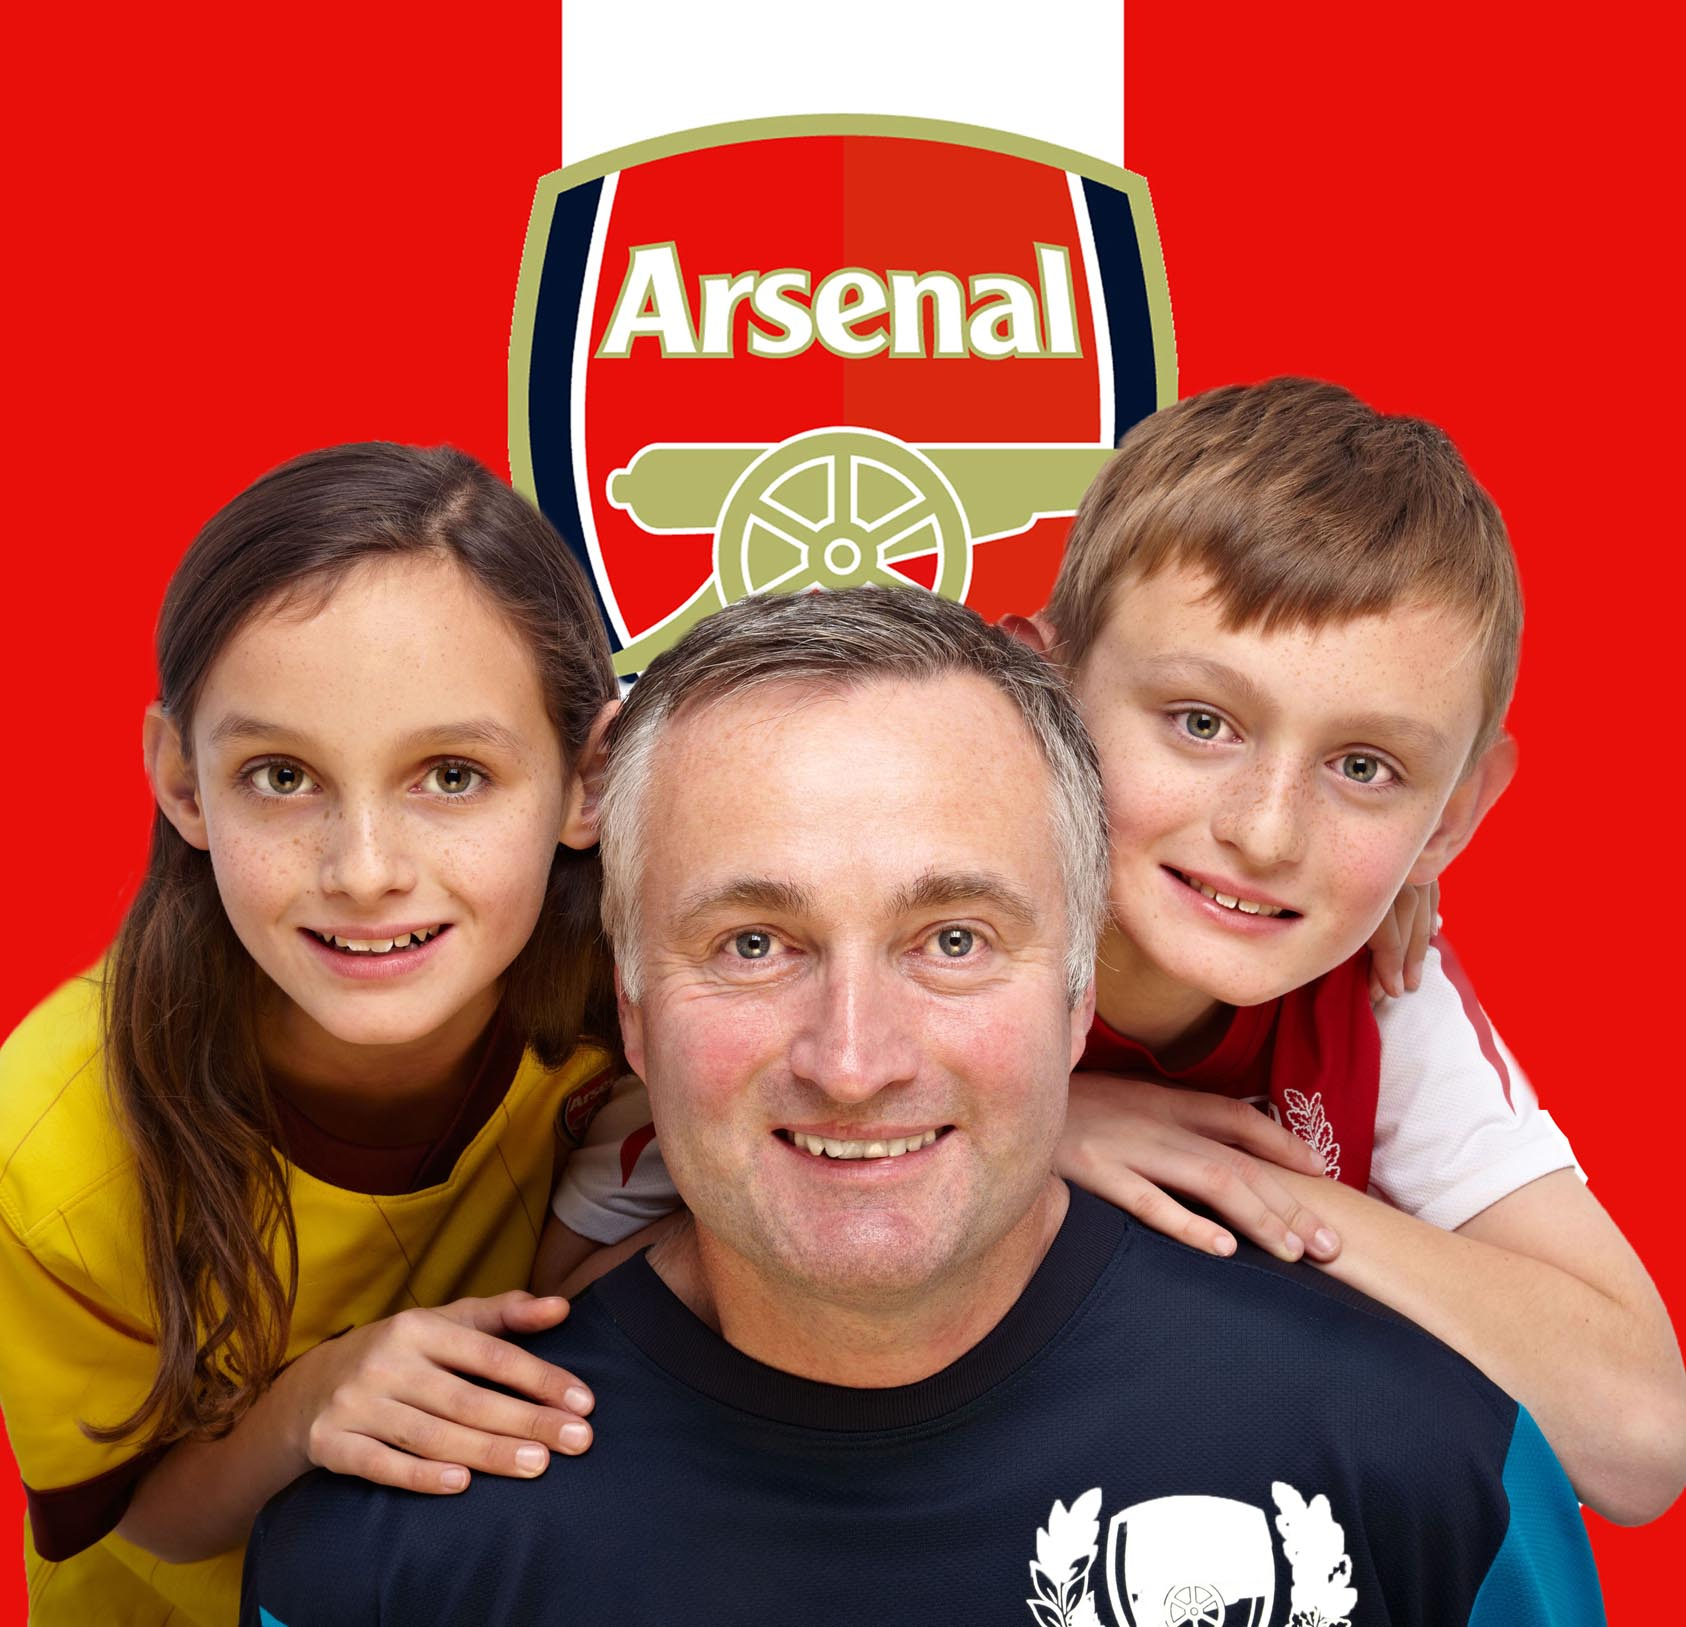 colin arsenal with kids.jpg